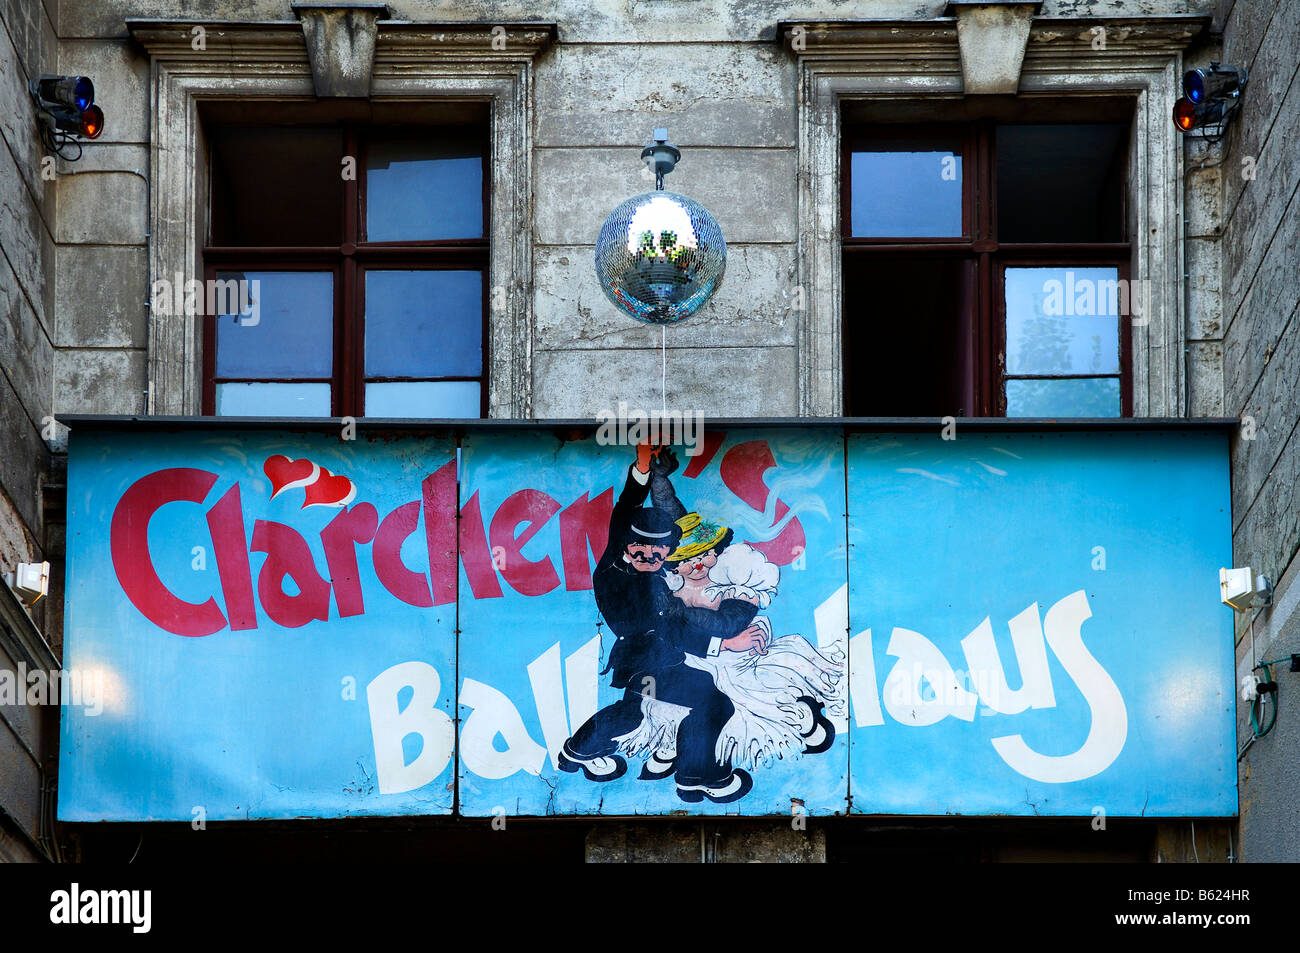 Sign for a Dancehall, Claerchen's Ballhaus, Berlin, Germany, Europe - Stock Image